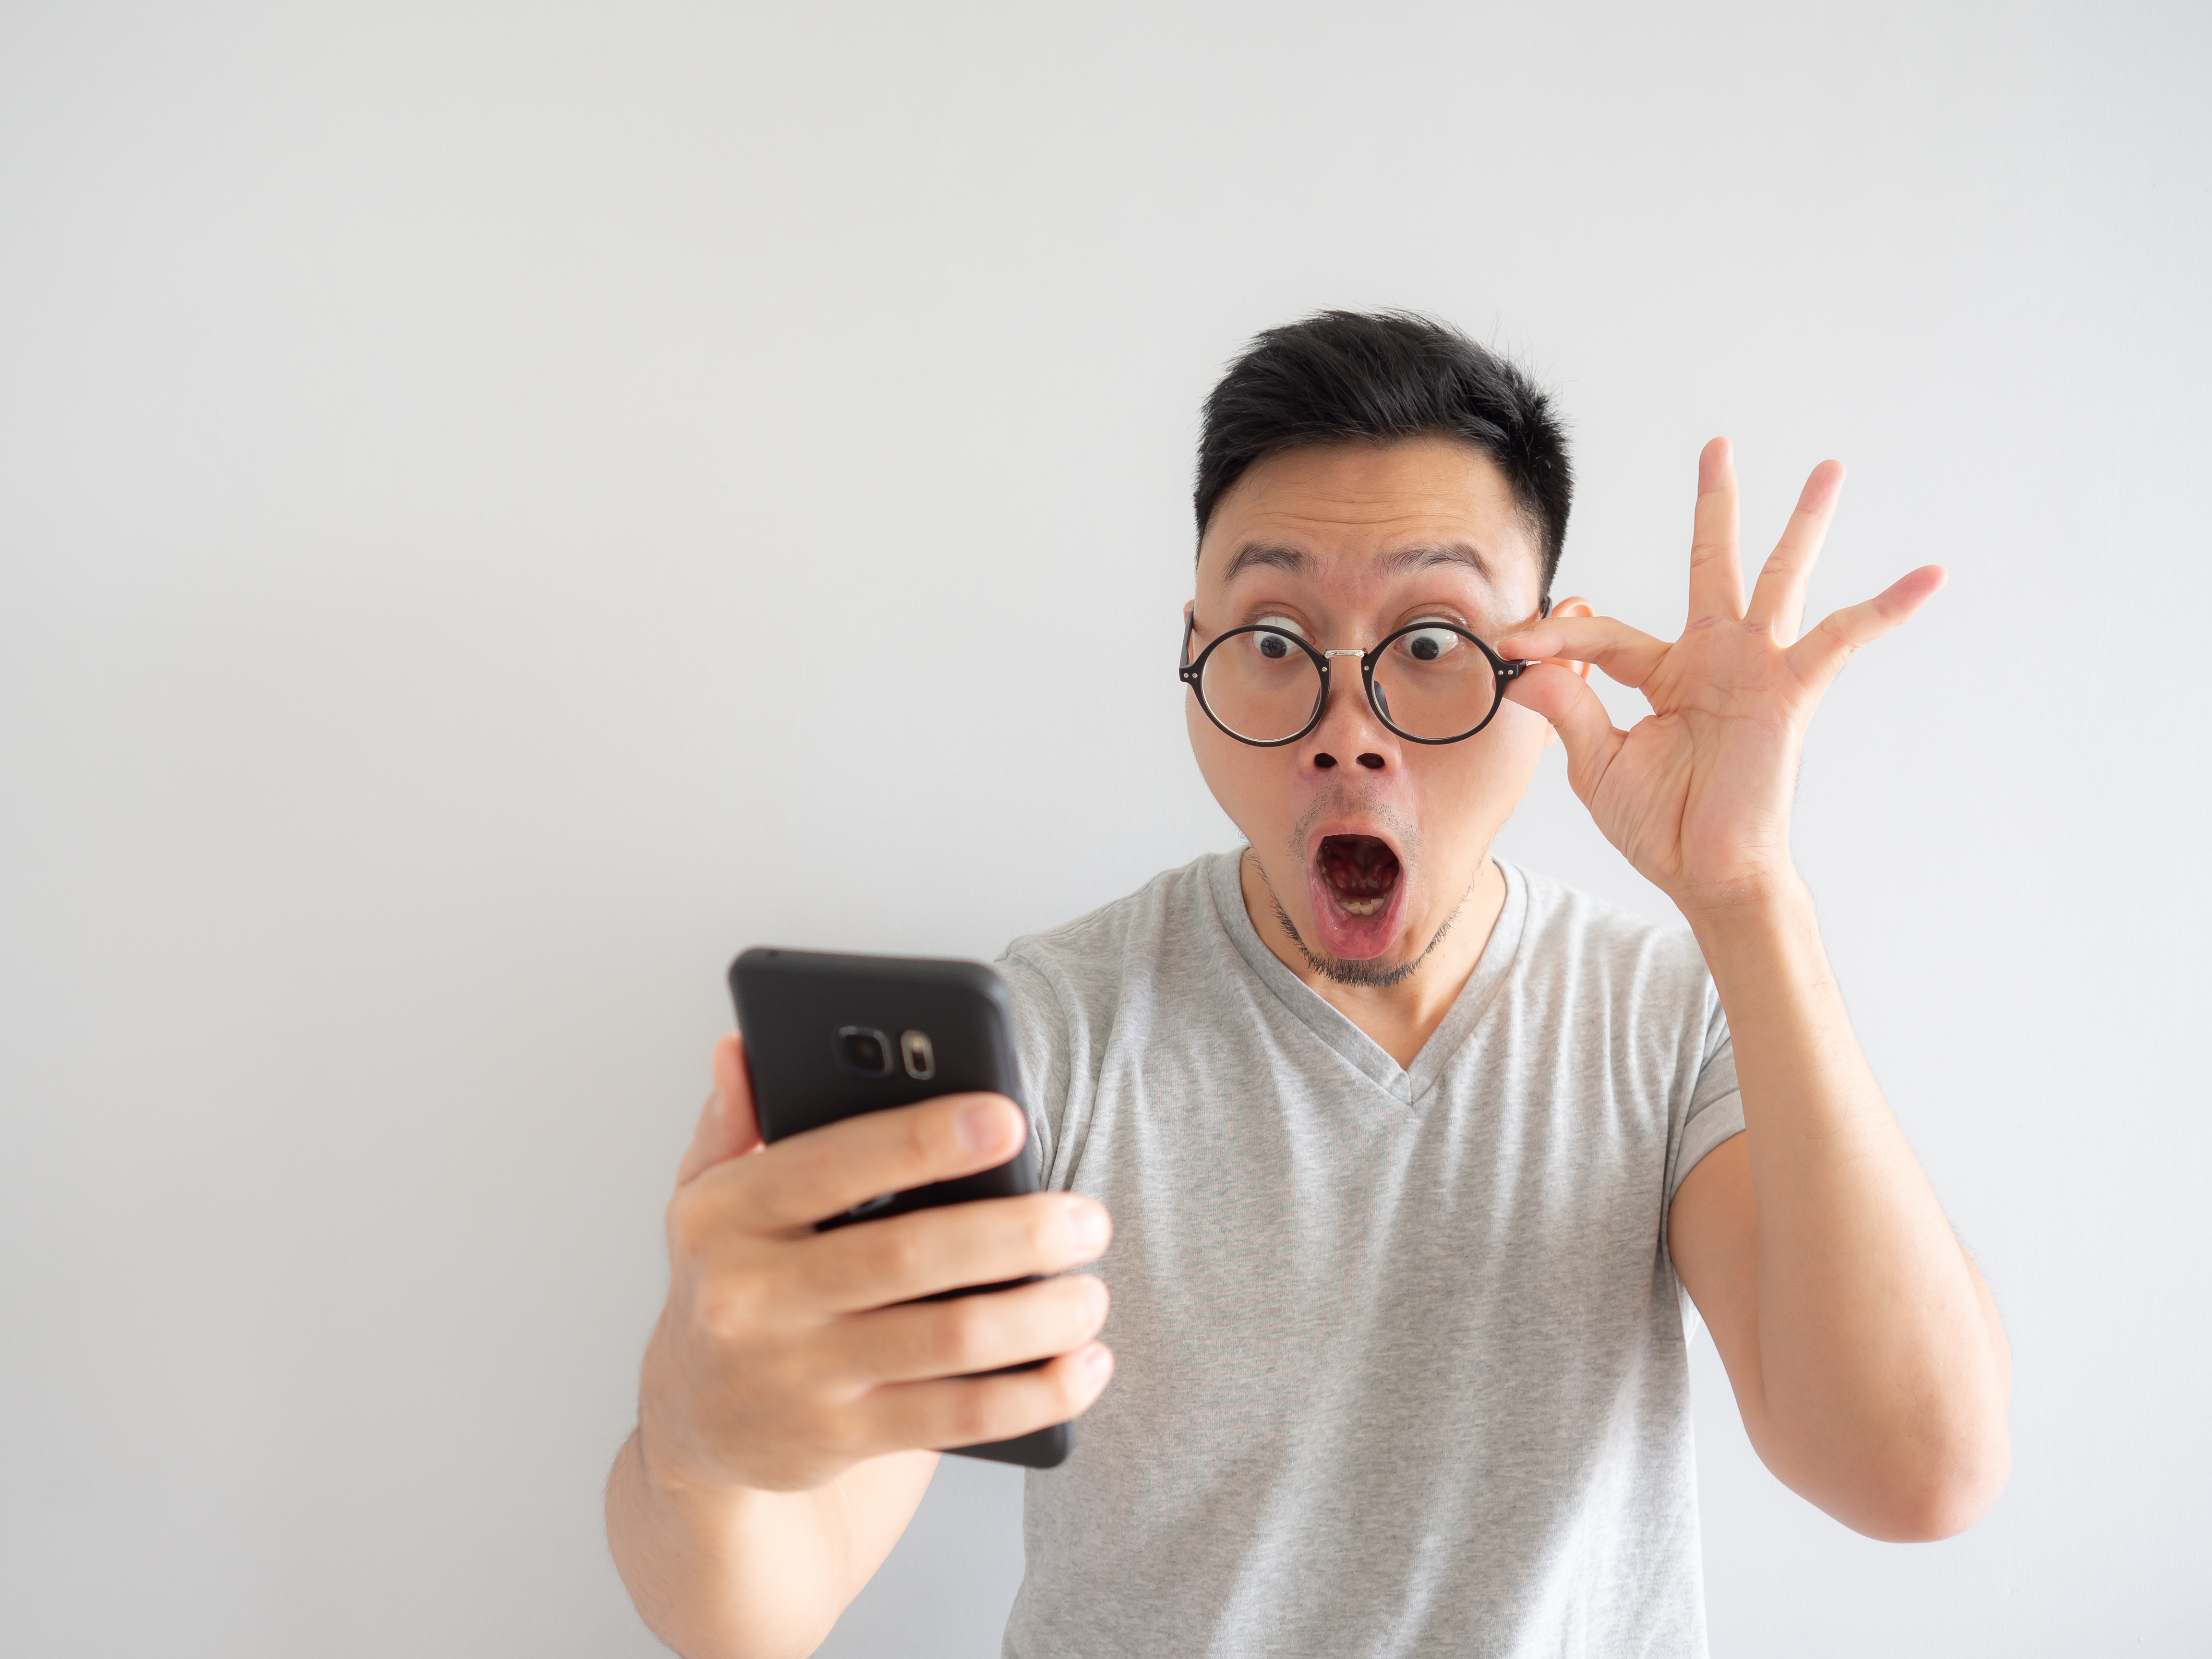 wow-face-of-man-shocked-what-he-see-in-the-smarthphone-